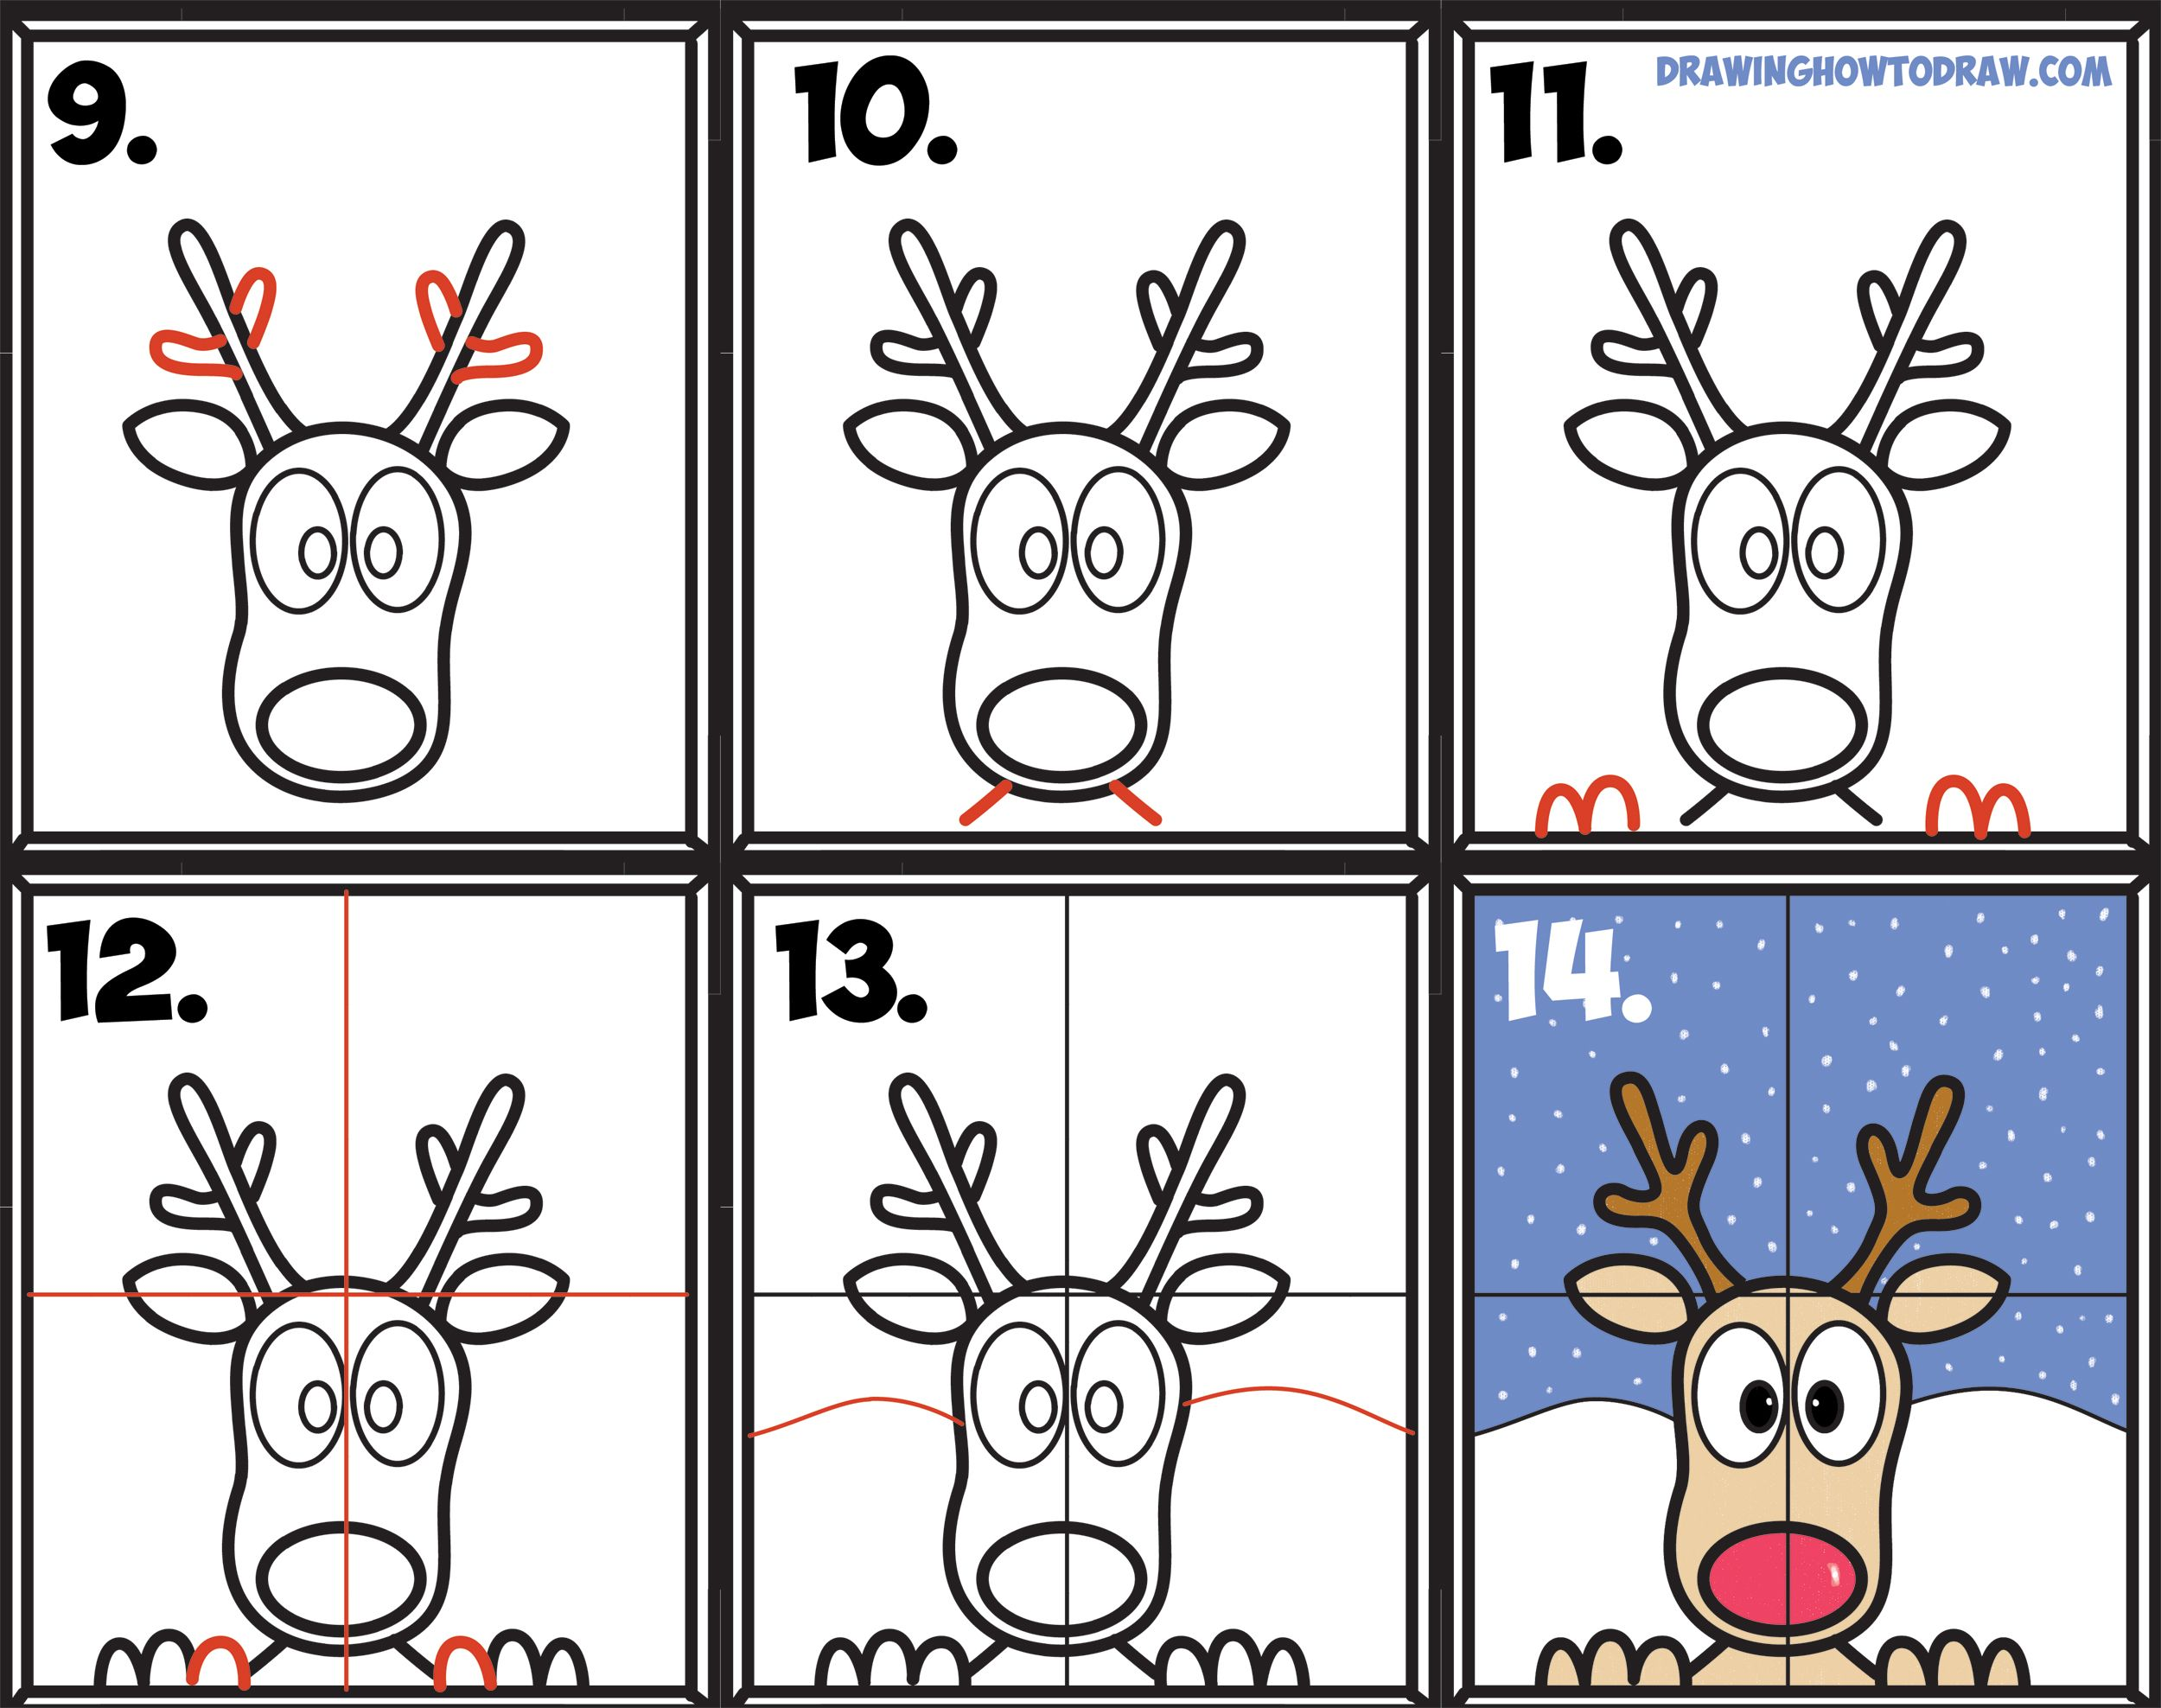 How to Draw Rudolph the Red Nosed Reindeer Looking in Window